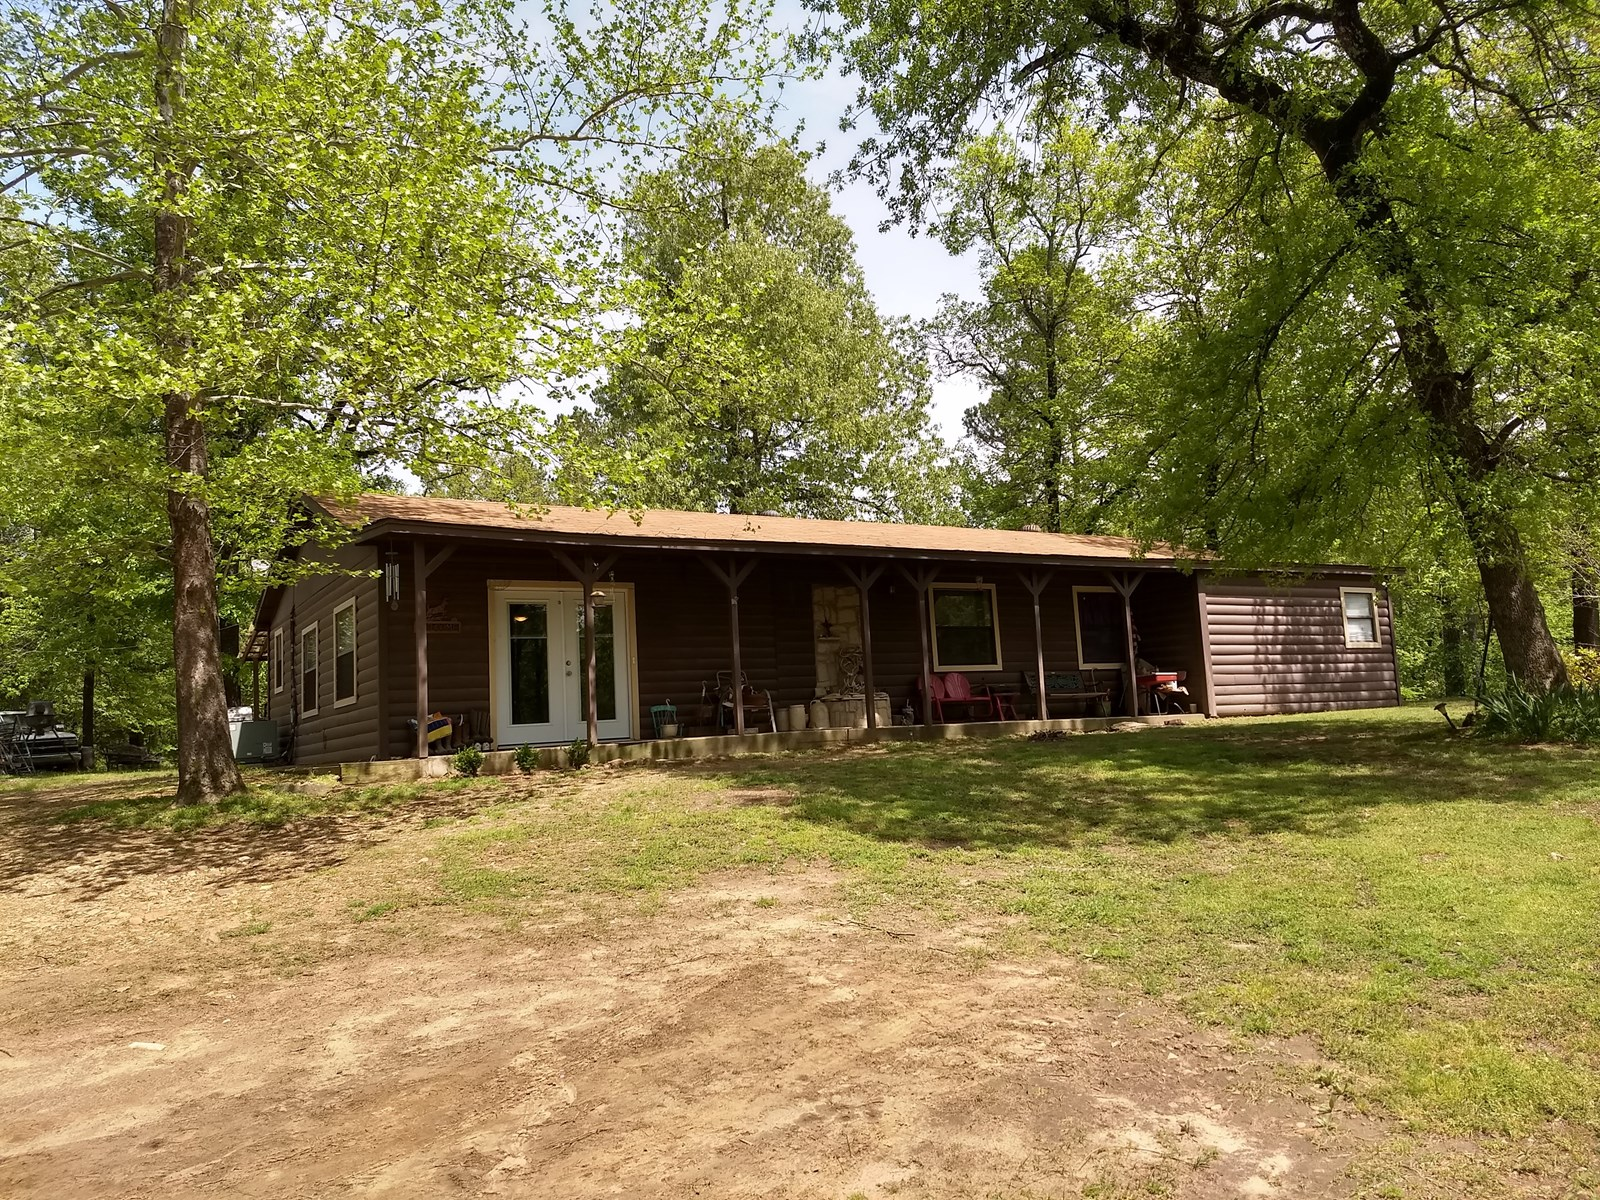 Log Cabin Home for Sale| Antlers, OK